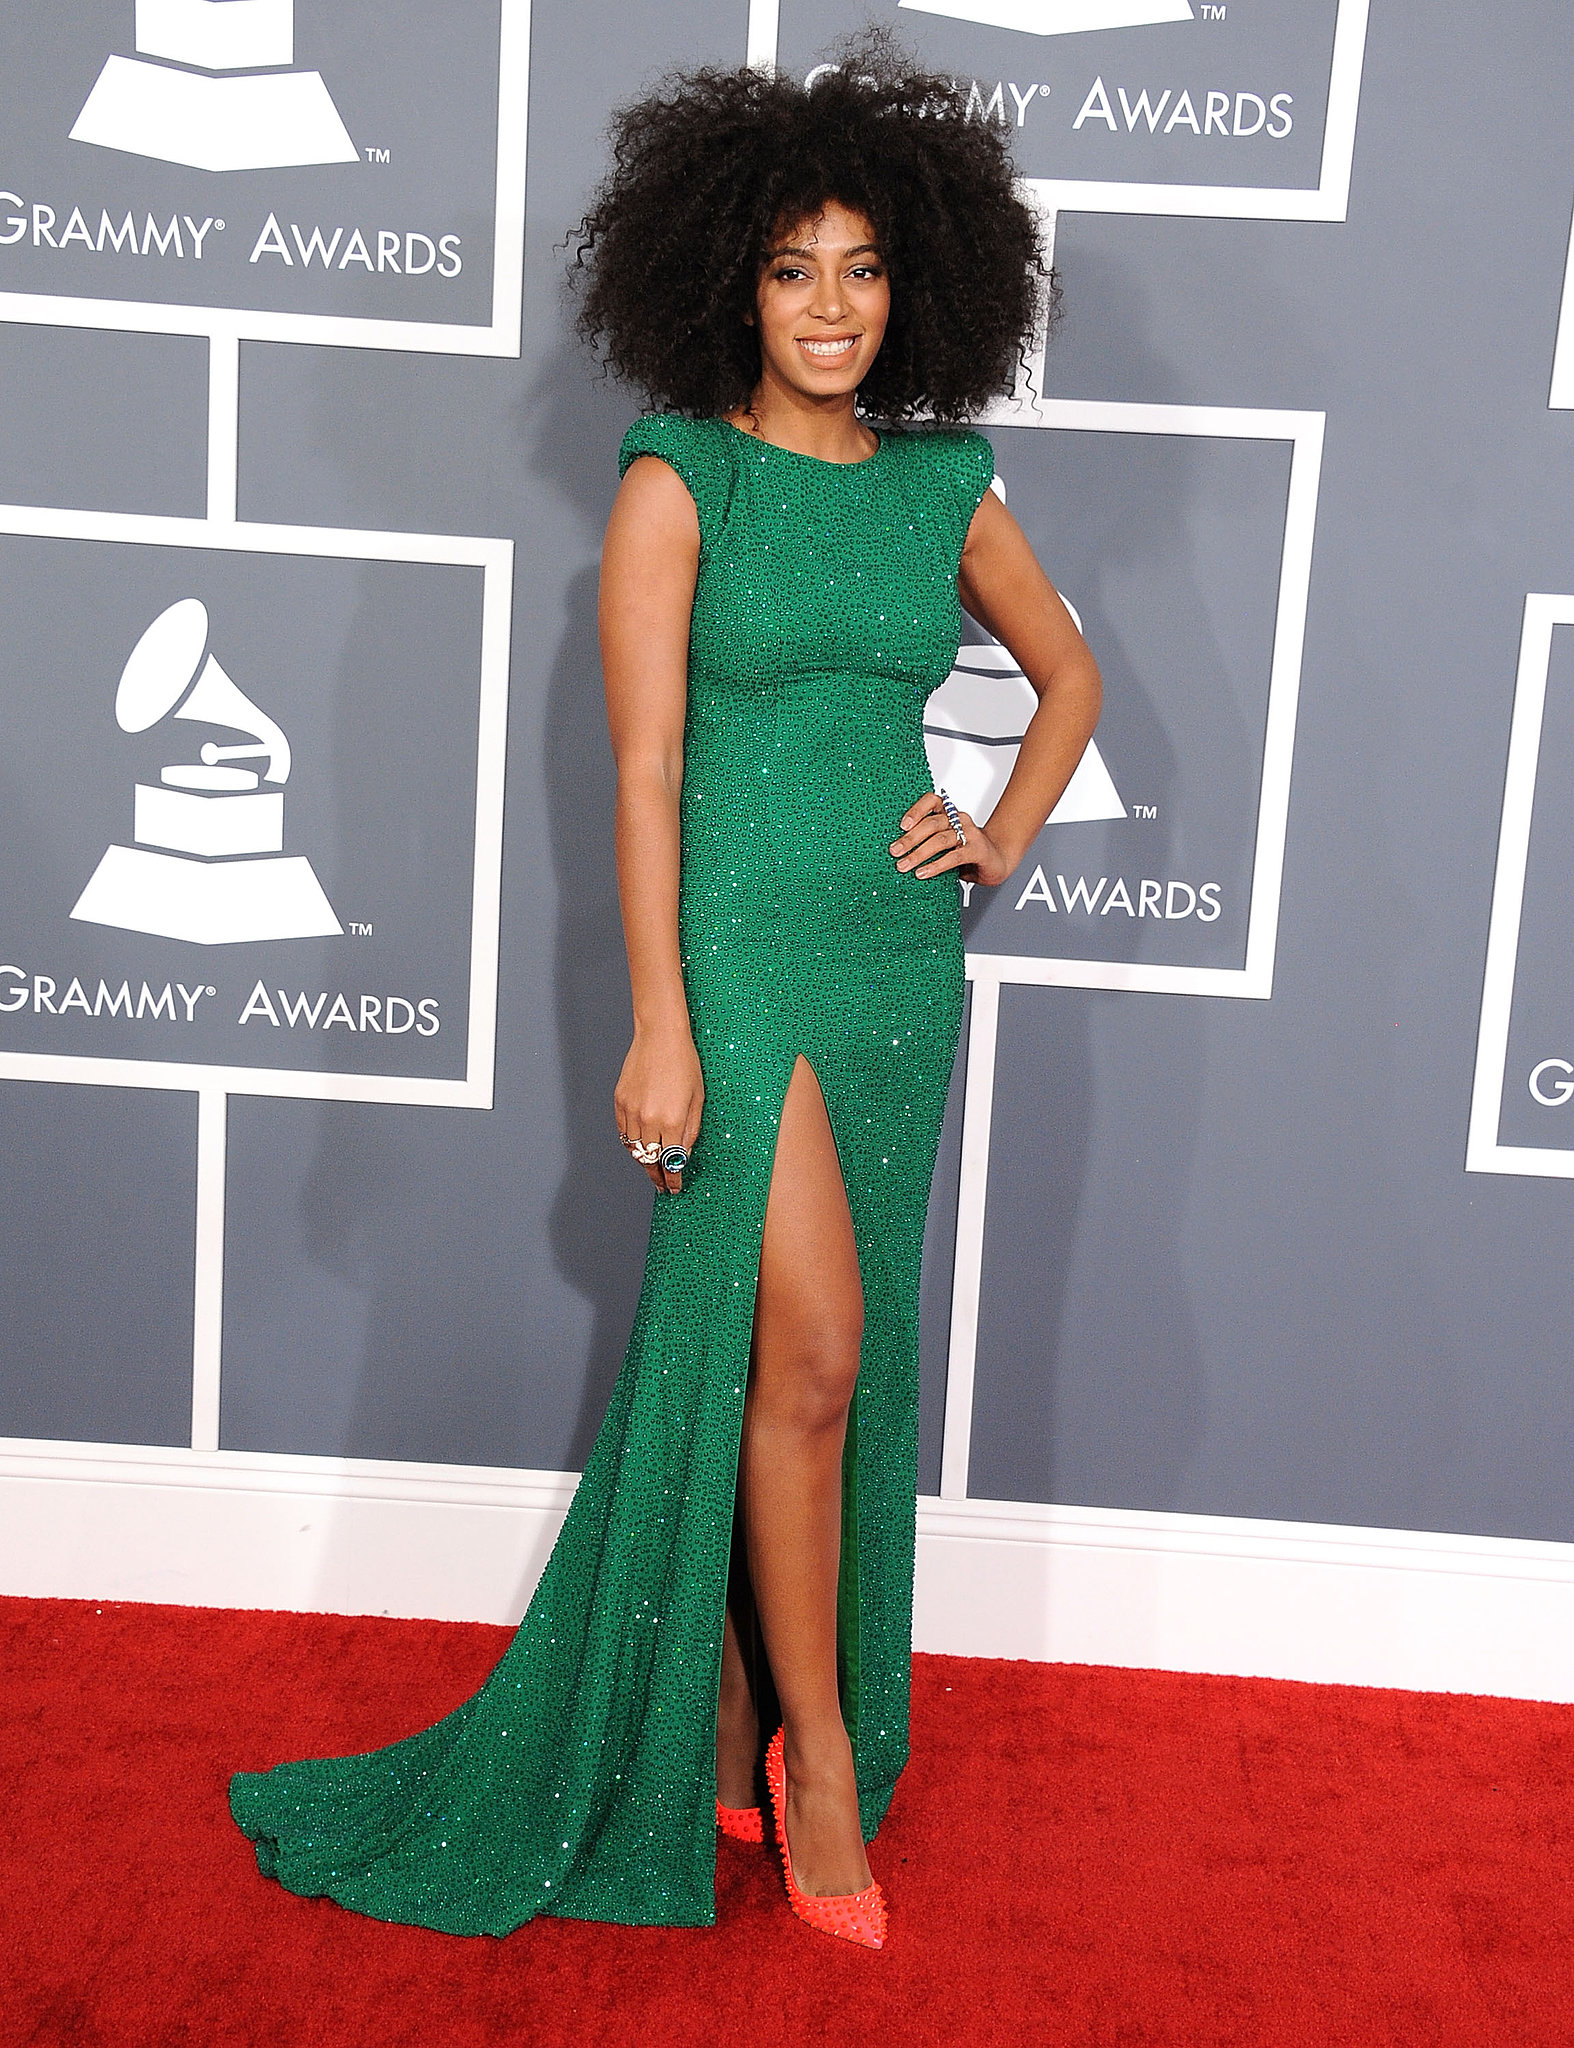 Solange hit the 2012 Grammy Awards red carpet in a shimmering emerald Ralph & Russo Couture gown and neon studded pumps.